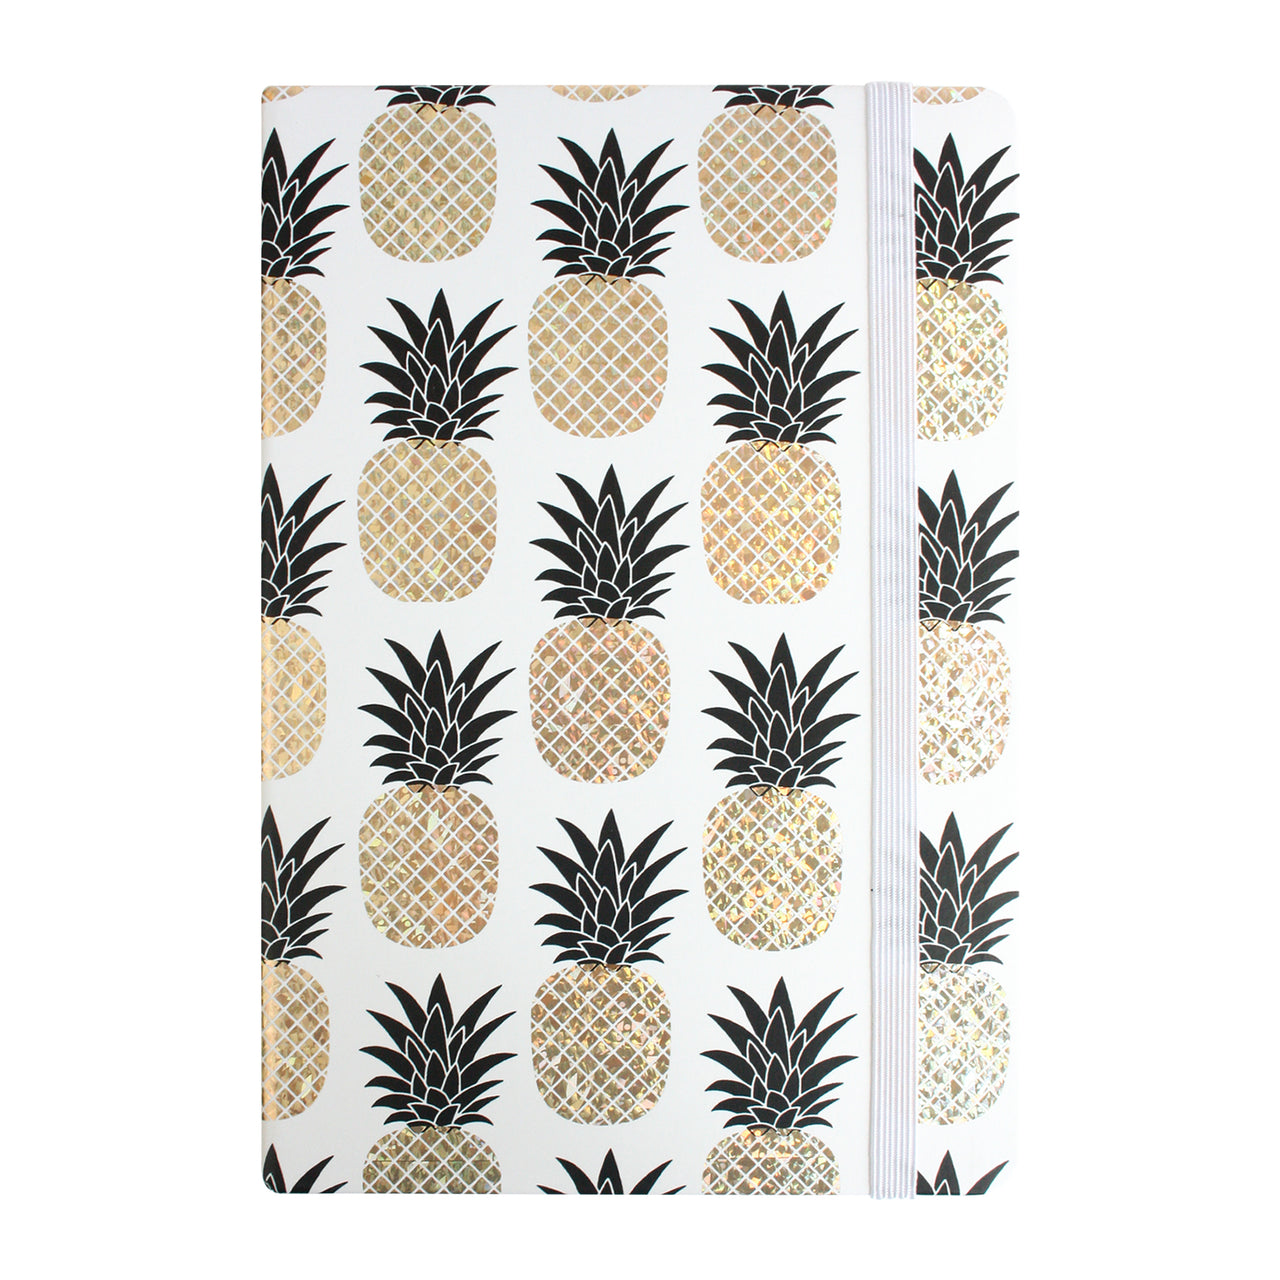 A5 Shiny Pineapple Print Notebook - Gold - EMARTBUY